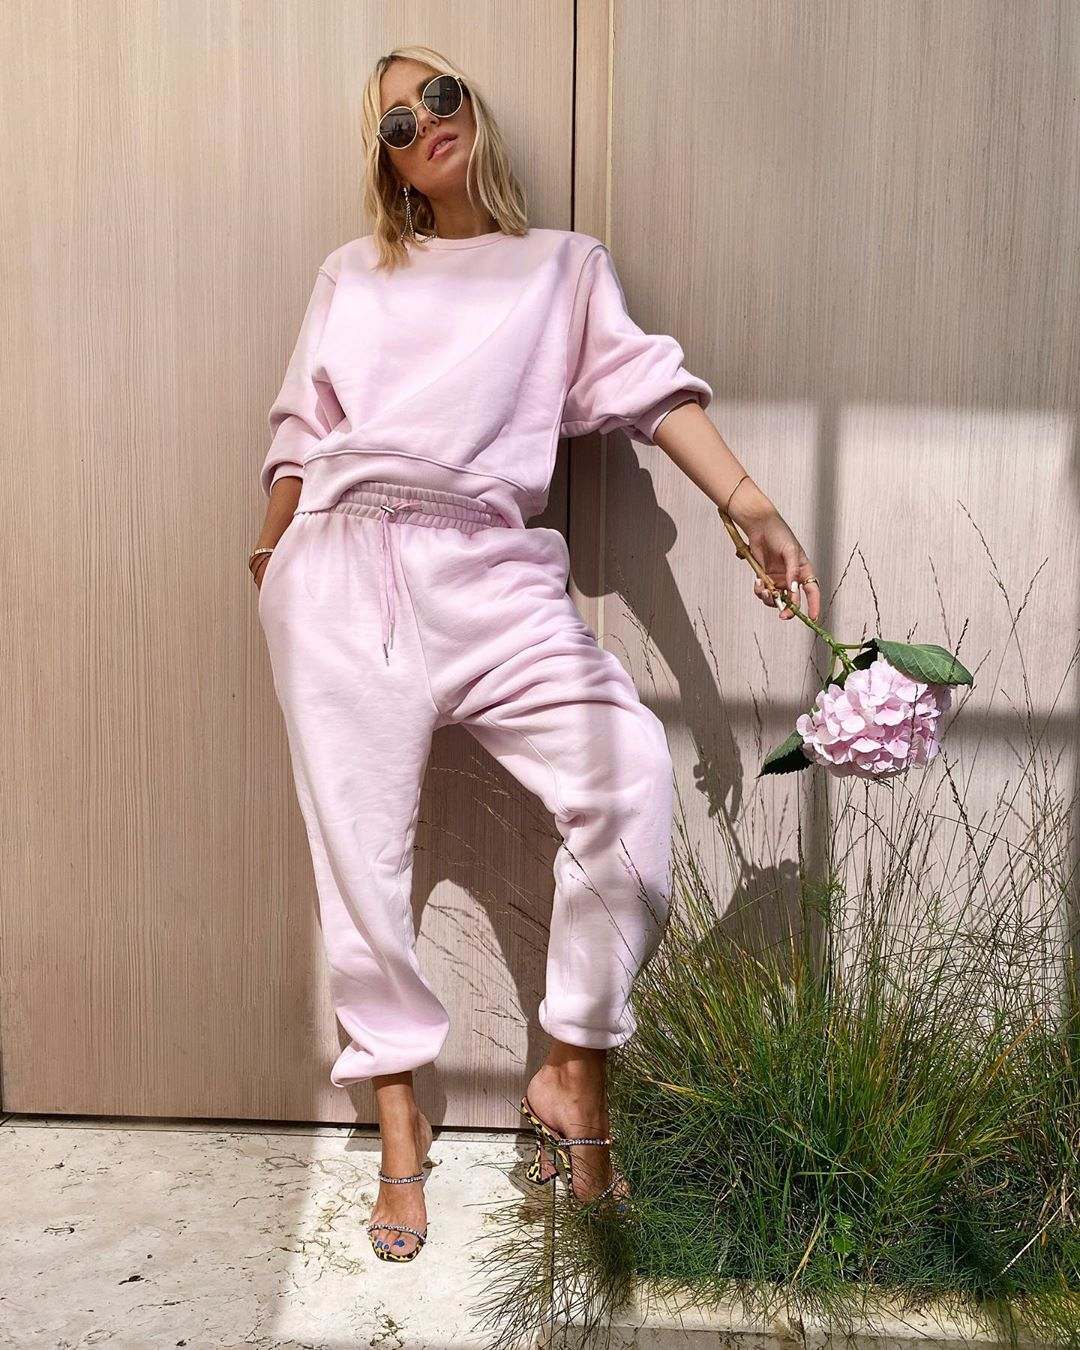 viktoria-rader-frankie-shop-vanessa-sweats-bubble-pink-instagram